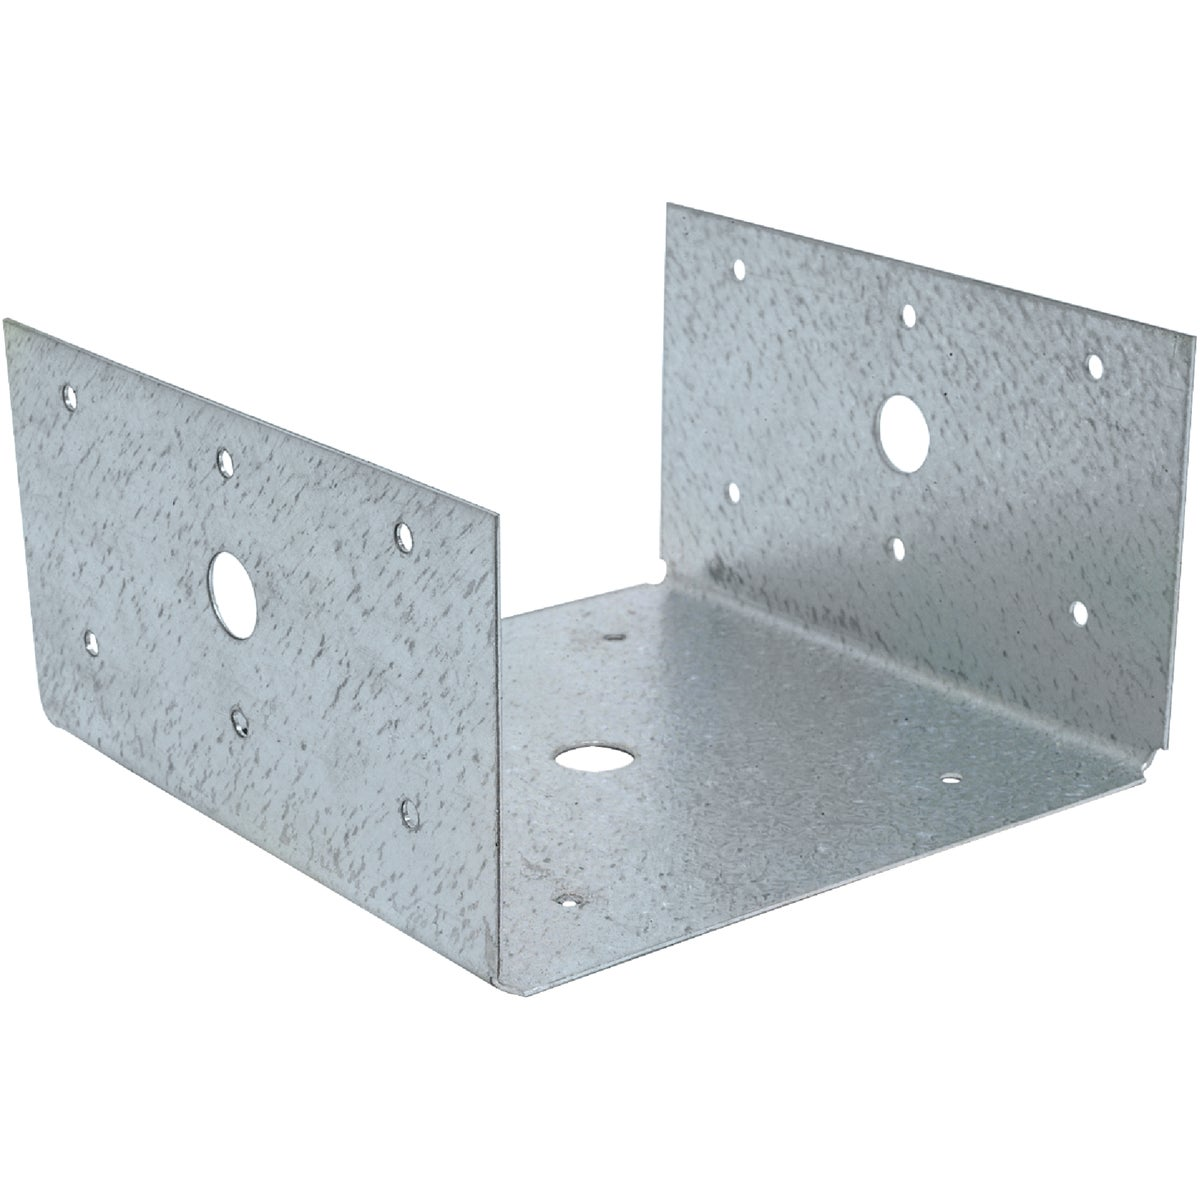 6X6 HALF BASE Z-MAX - BC60Z by Simpson Strong Tie